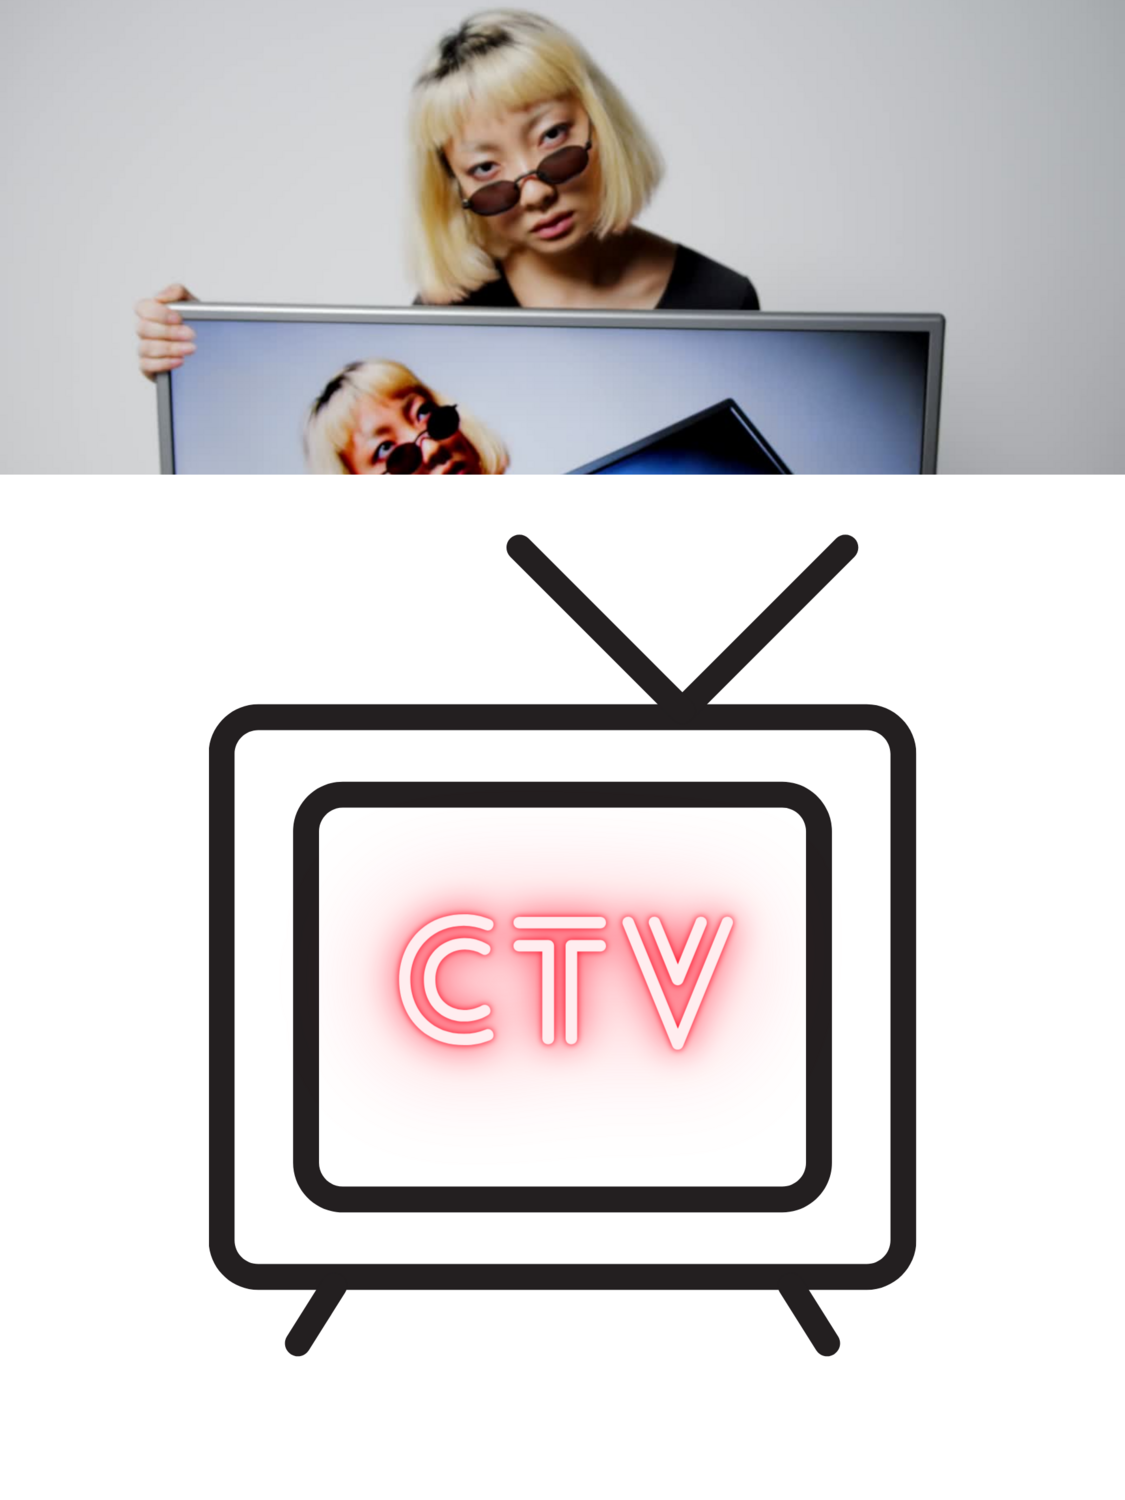 CTV (Connected TV Advertising)